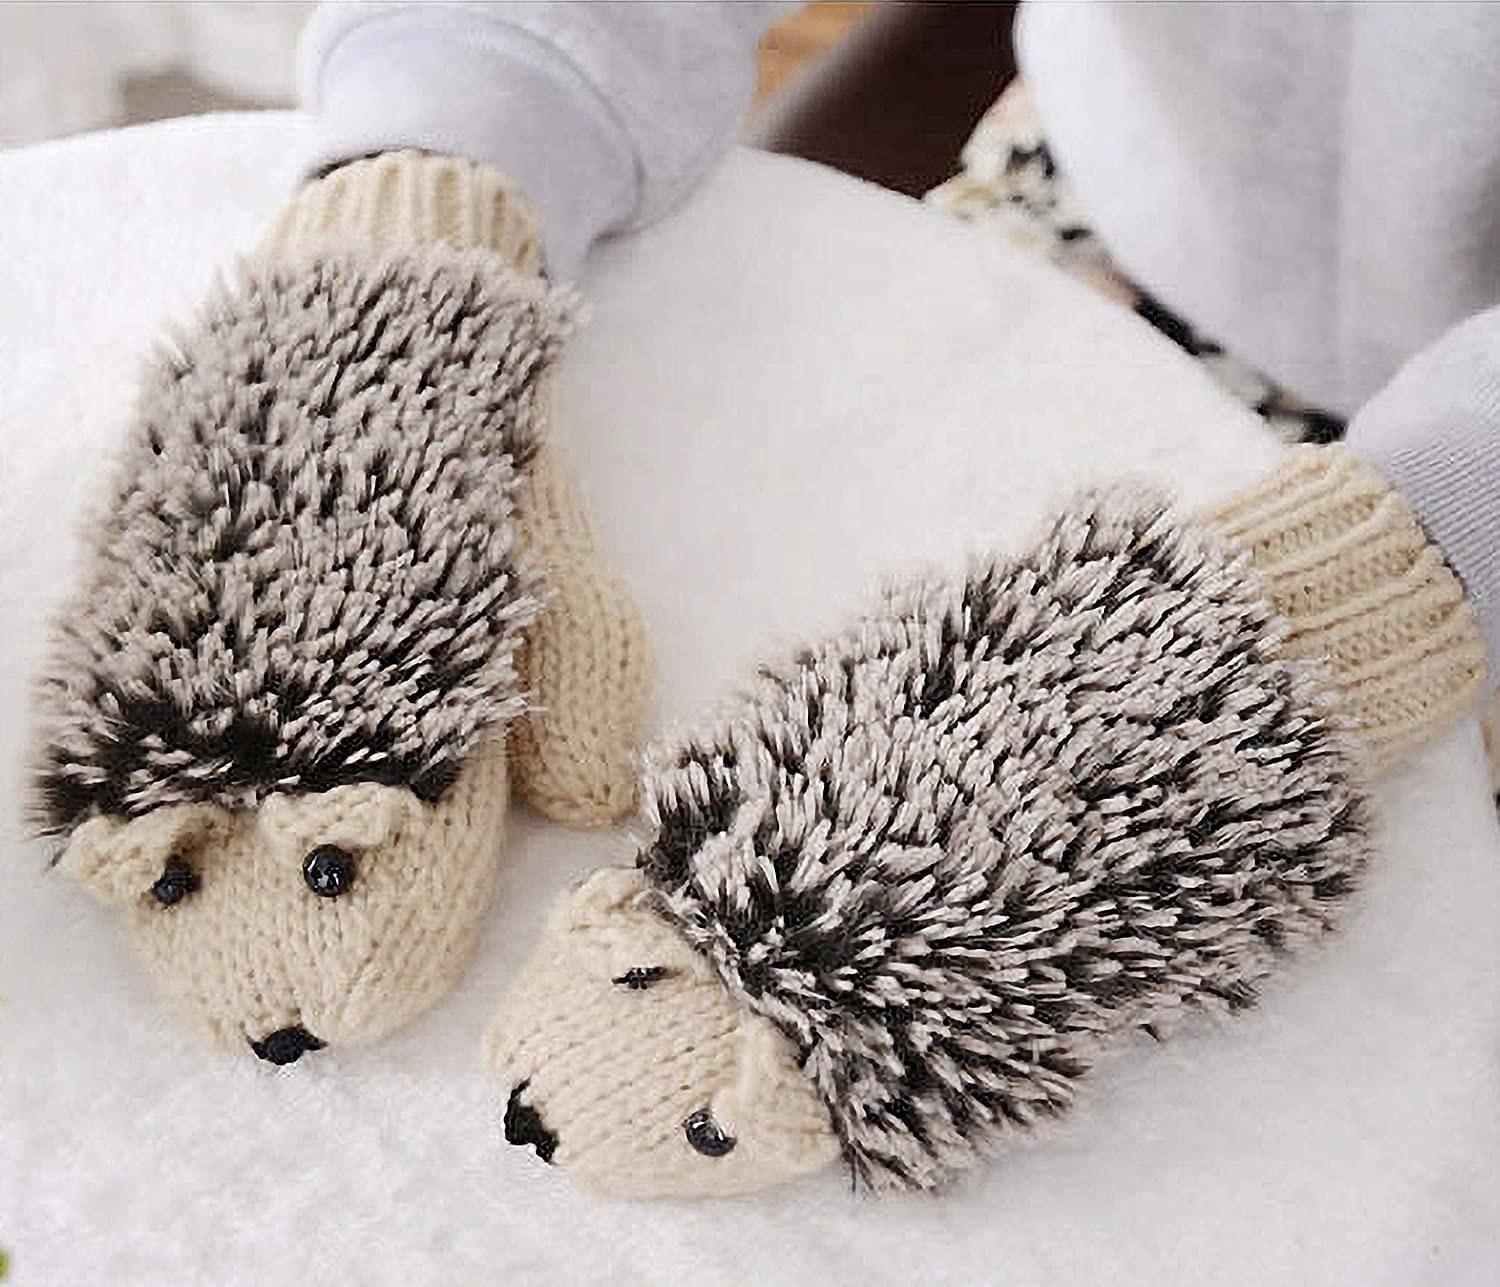 mittens with ears, eyes, snouts, and shaggy backs